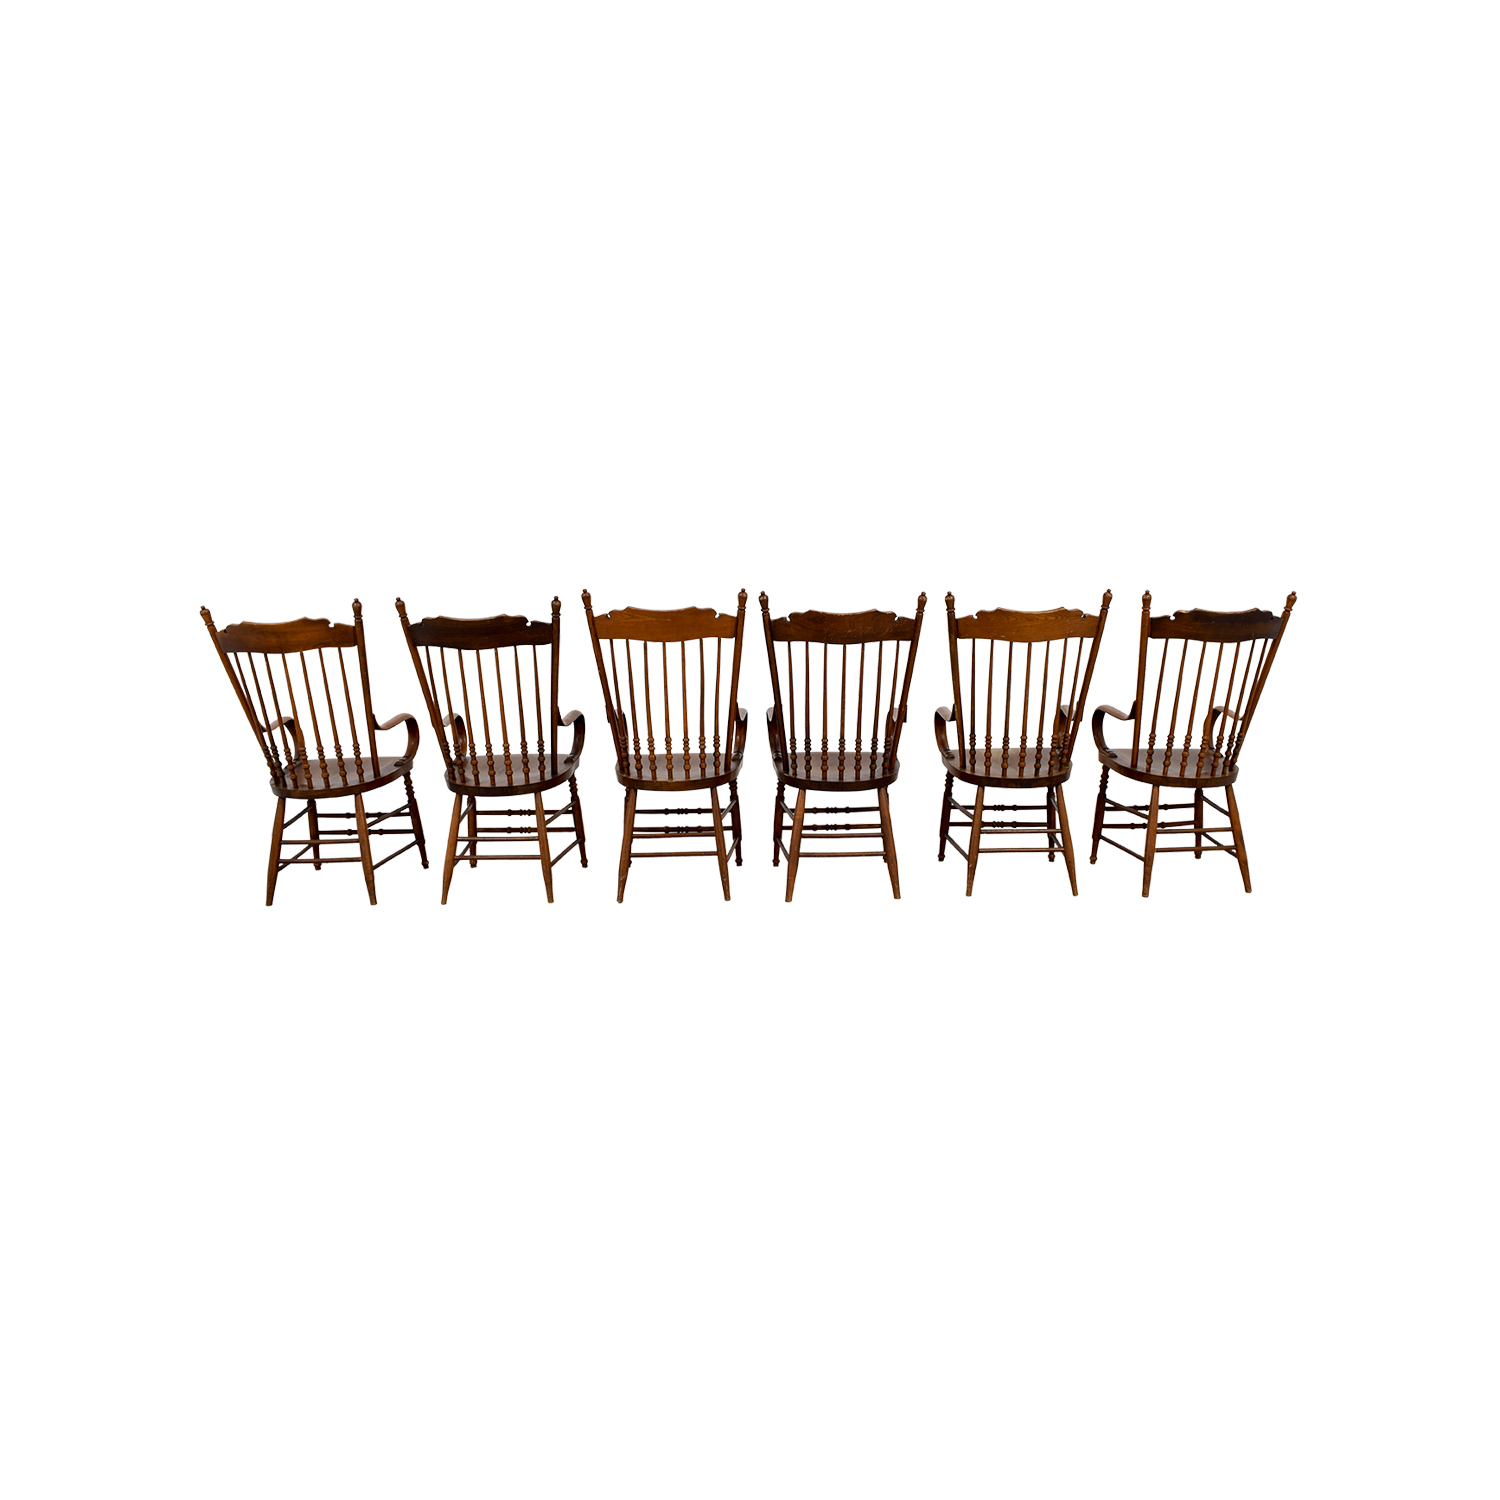 Antique Windsor Chairs with Arms used